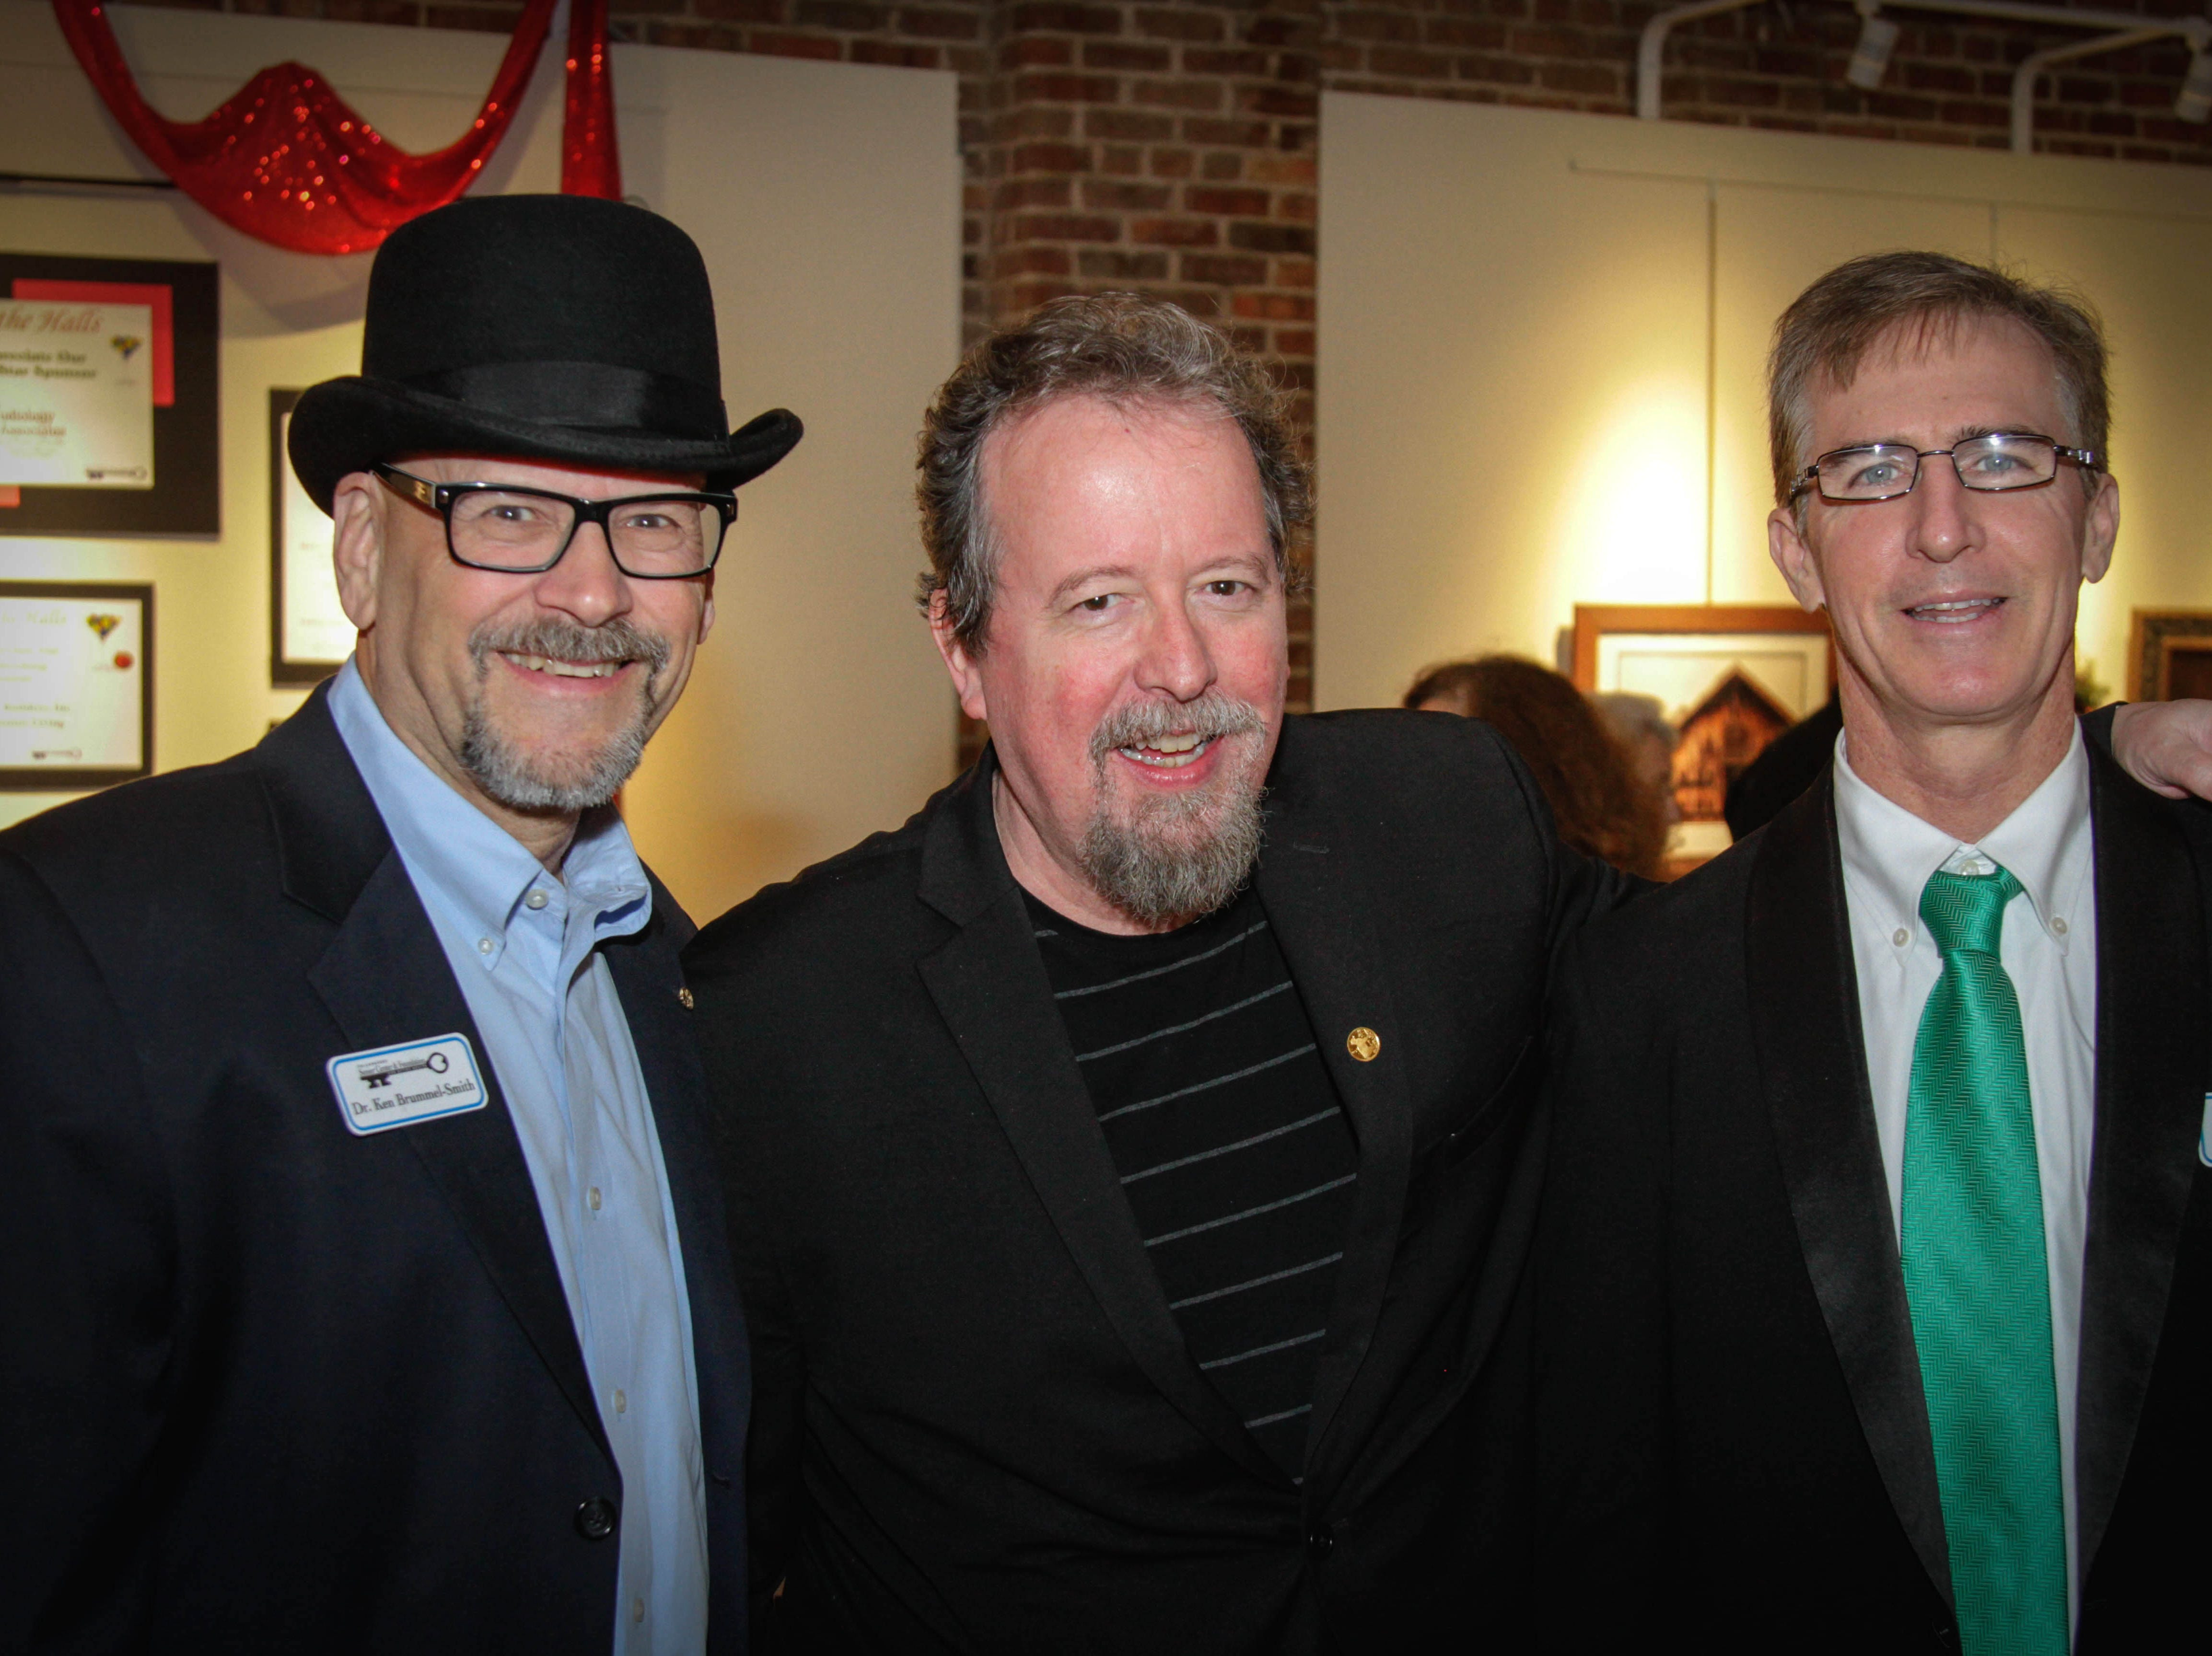 From left, Tallahassee Senior Foundation Board Ken Brummel Smith M.D., Tallahassee Democrat entertainment reporter, humorist, and Emcee of Deck the Halls, Mark Hinson, and Doug Carlson, Vice-President of the Board and 2016 Deck the Halls Chair celebrate a fun evening.